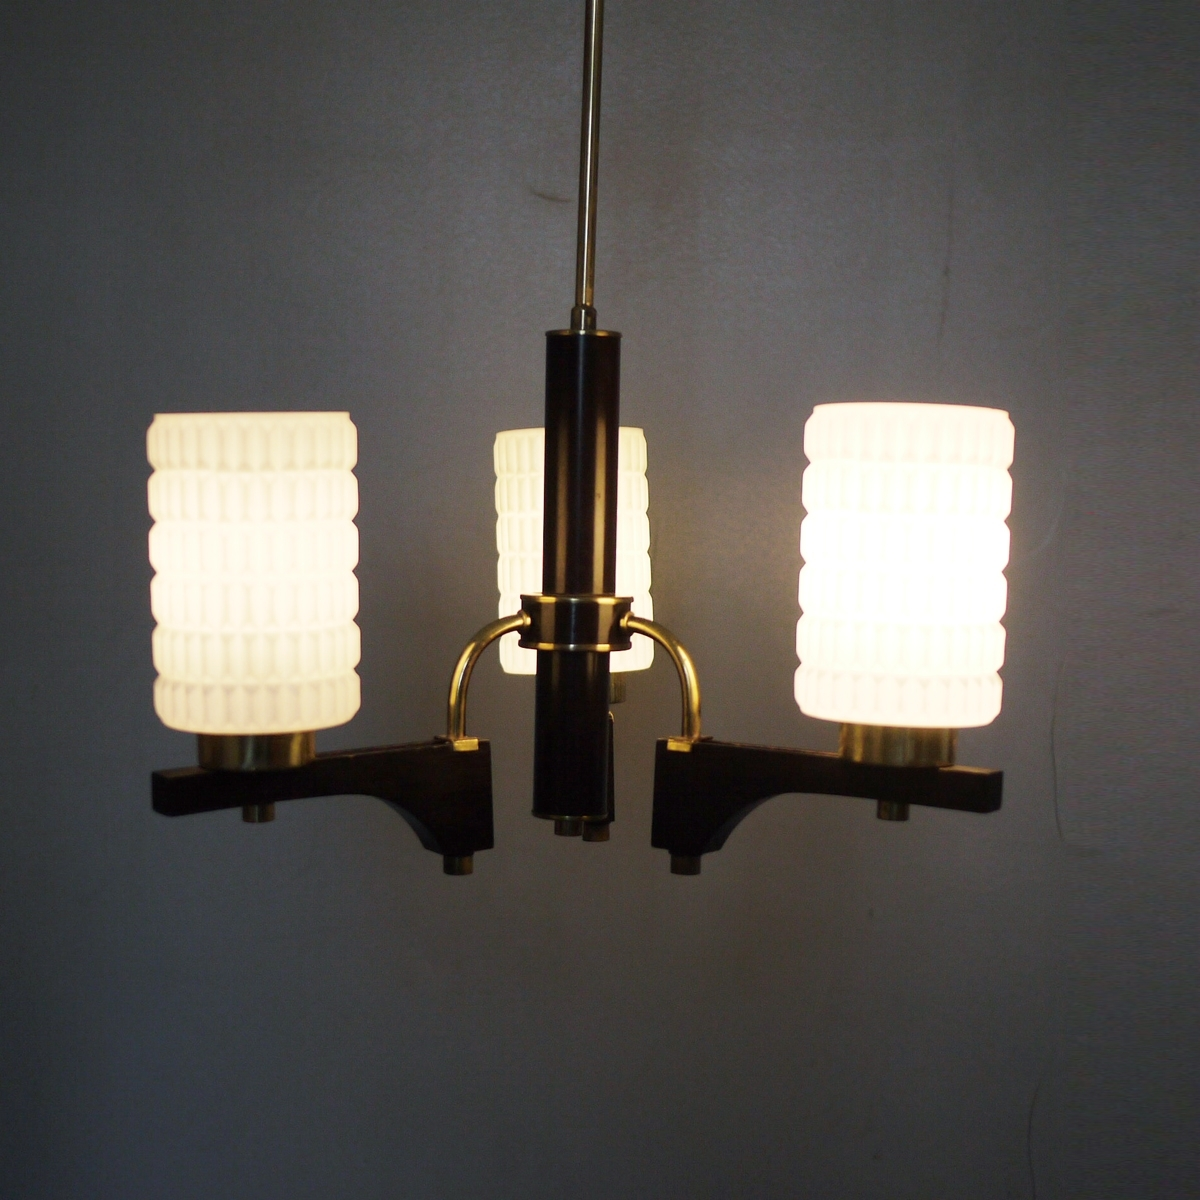 Vintage Gold And Black Glass Chandelier For Sale At Pamono Throughout Trendy Black Glass Chandelier (View 19 of 20)